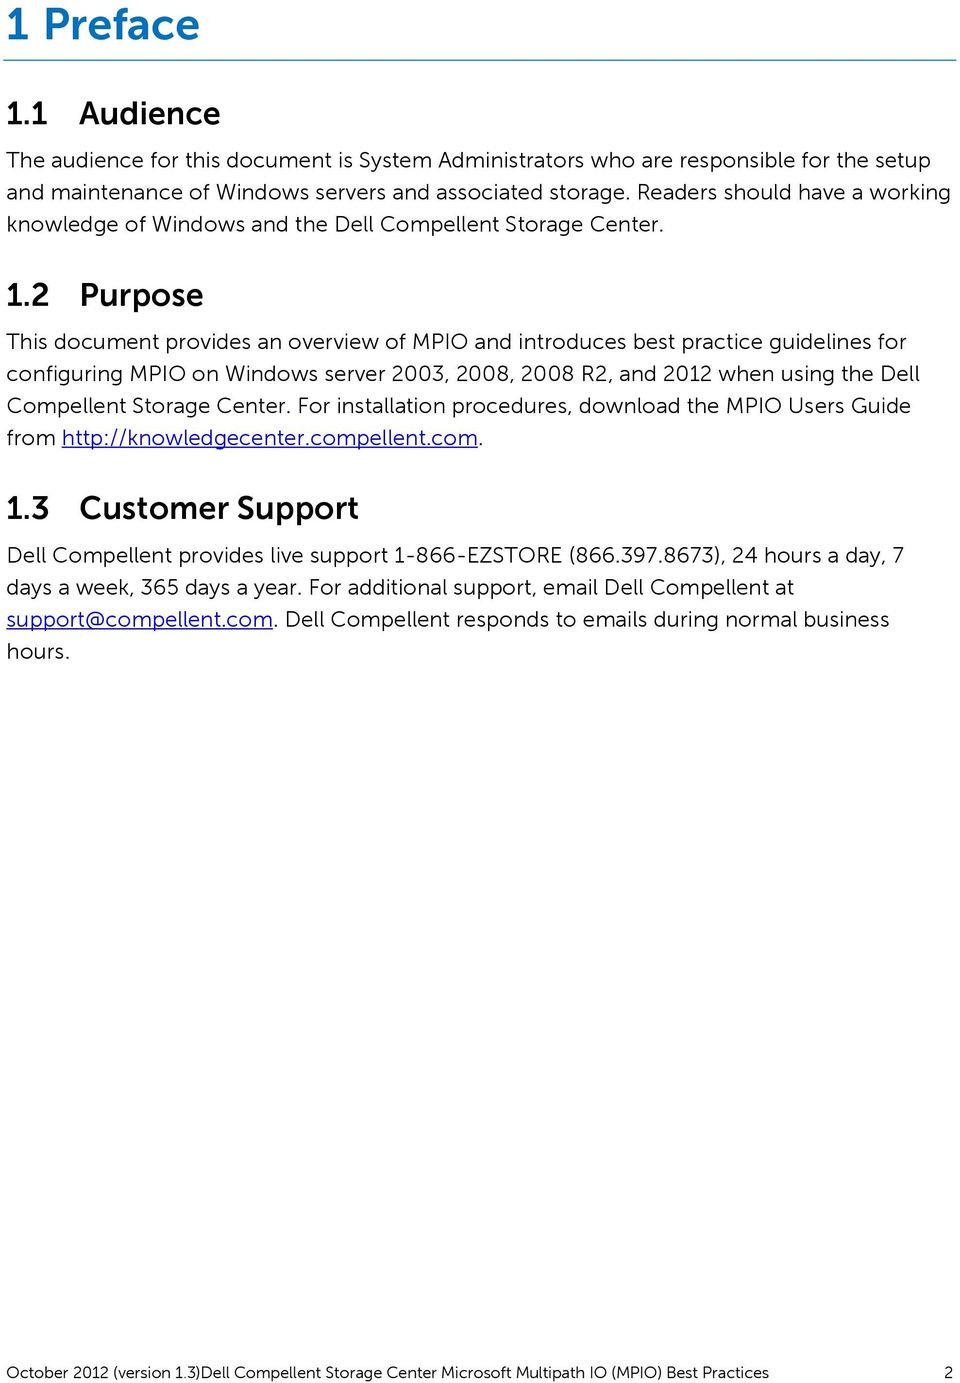 2 Purpose This document provides an overview of MPIO and introduces best practice guidelines for configuring MPIO on Windows server 2003, 2008, 2008 R2, and 2012 when using the Dell Compellent